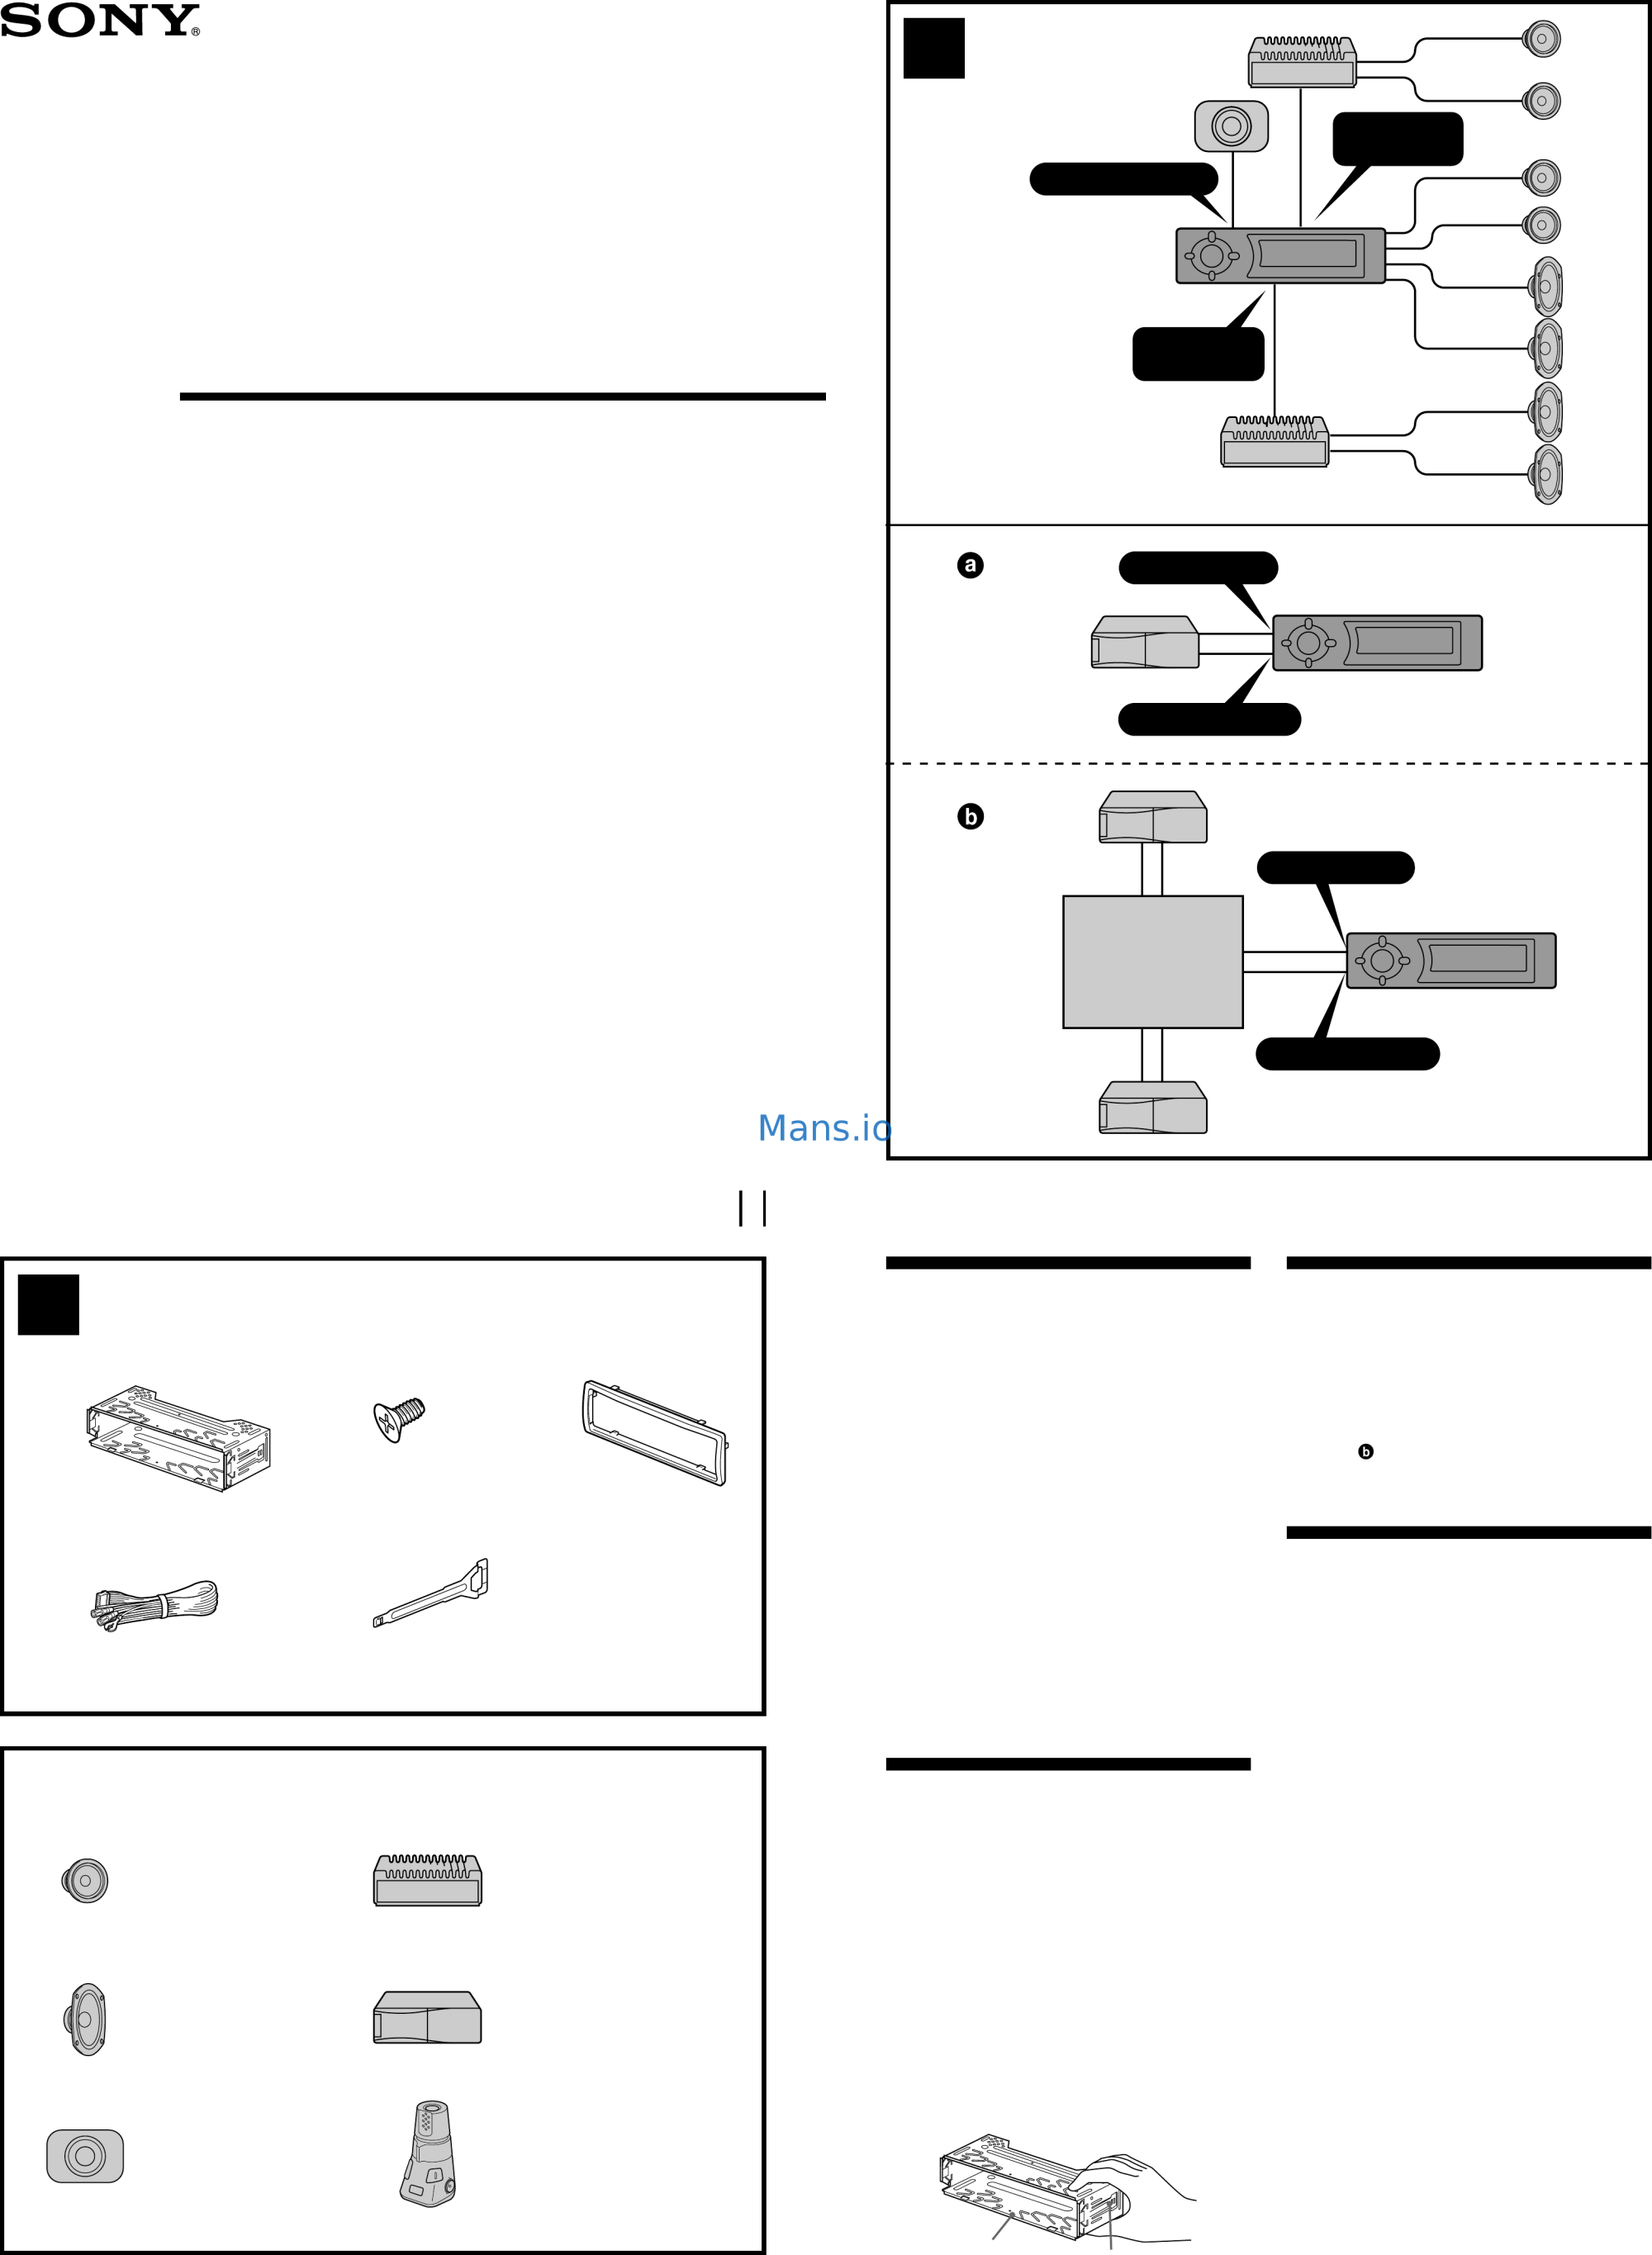 hight resolution of sony cdx fw700 installation connection instructions page 1 sony cdx fw700 wiring diagram